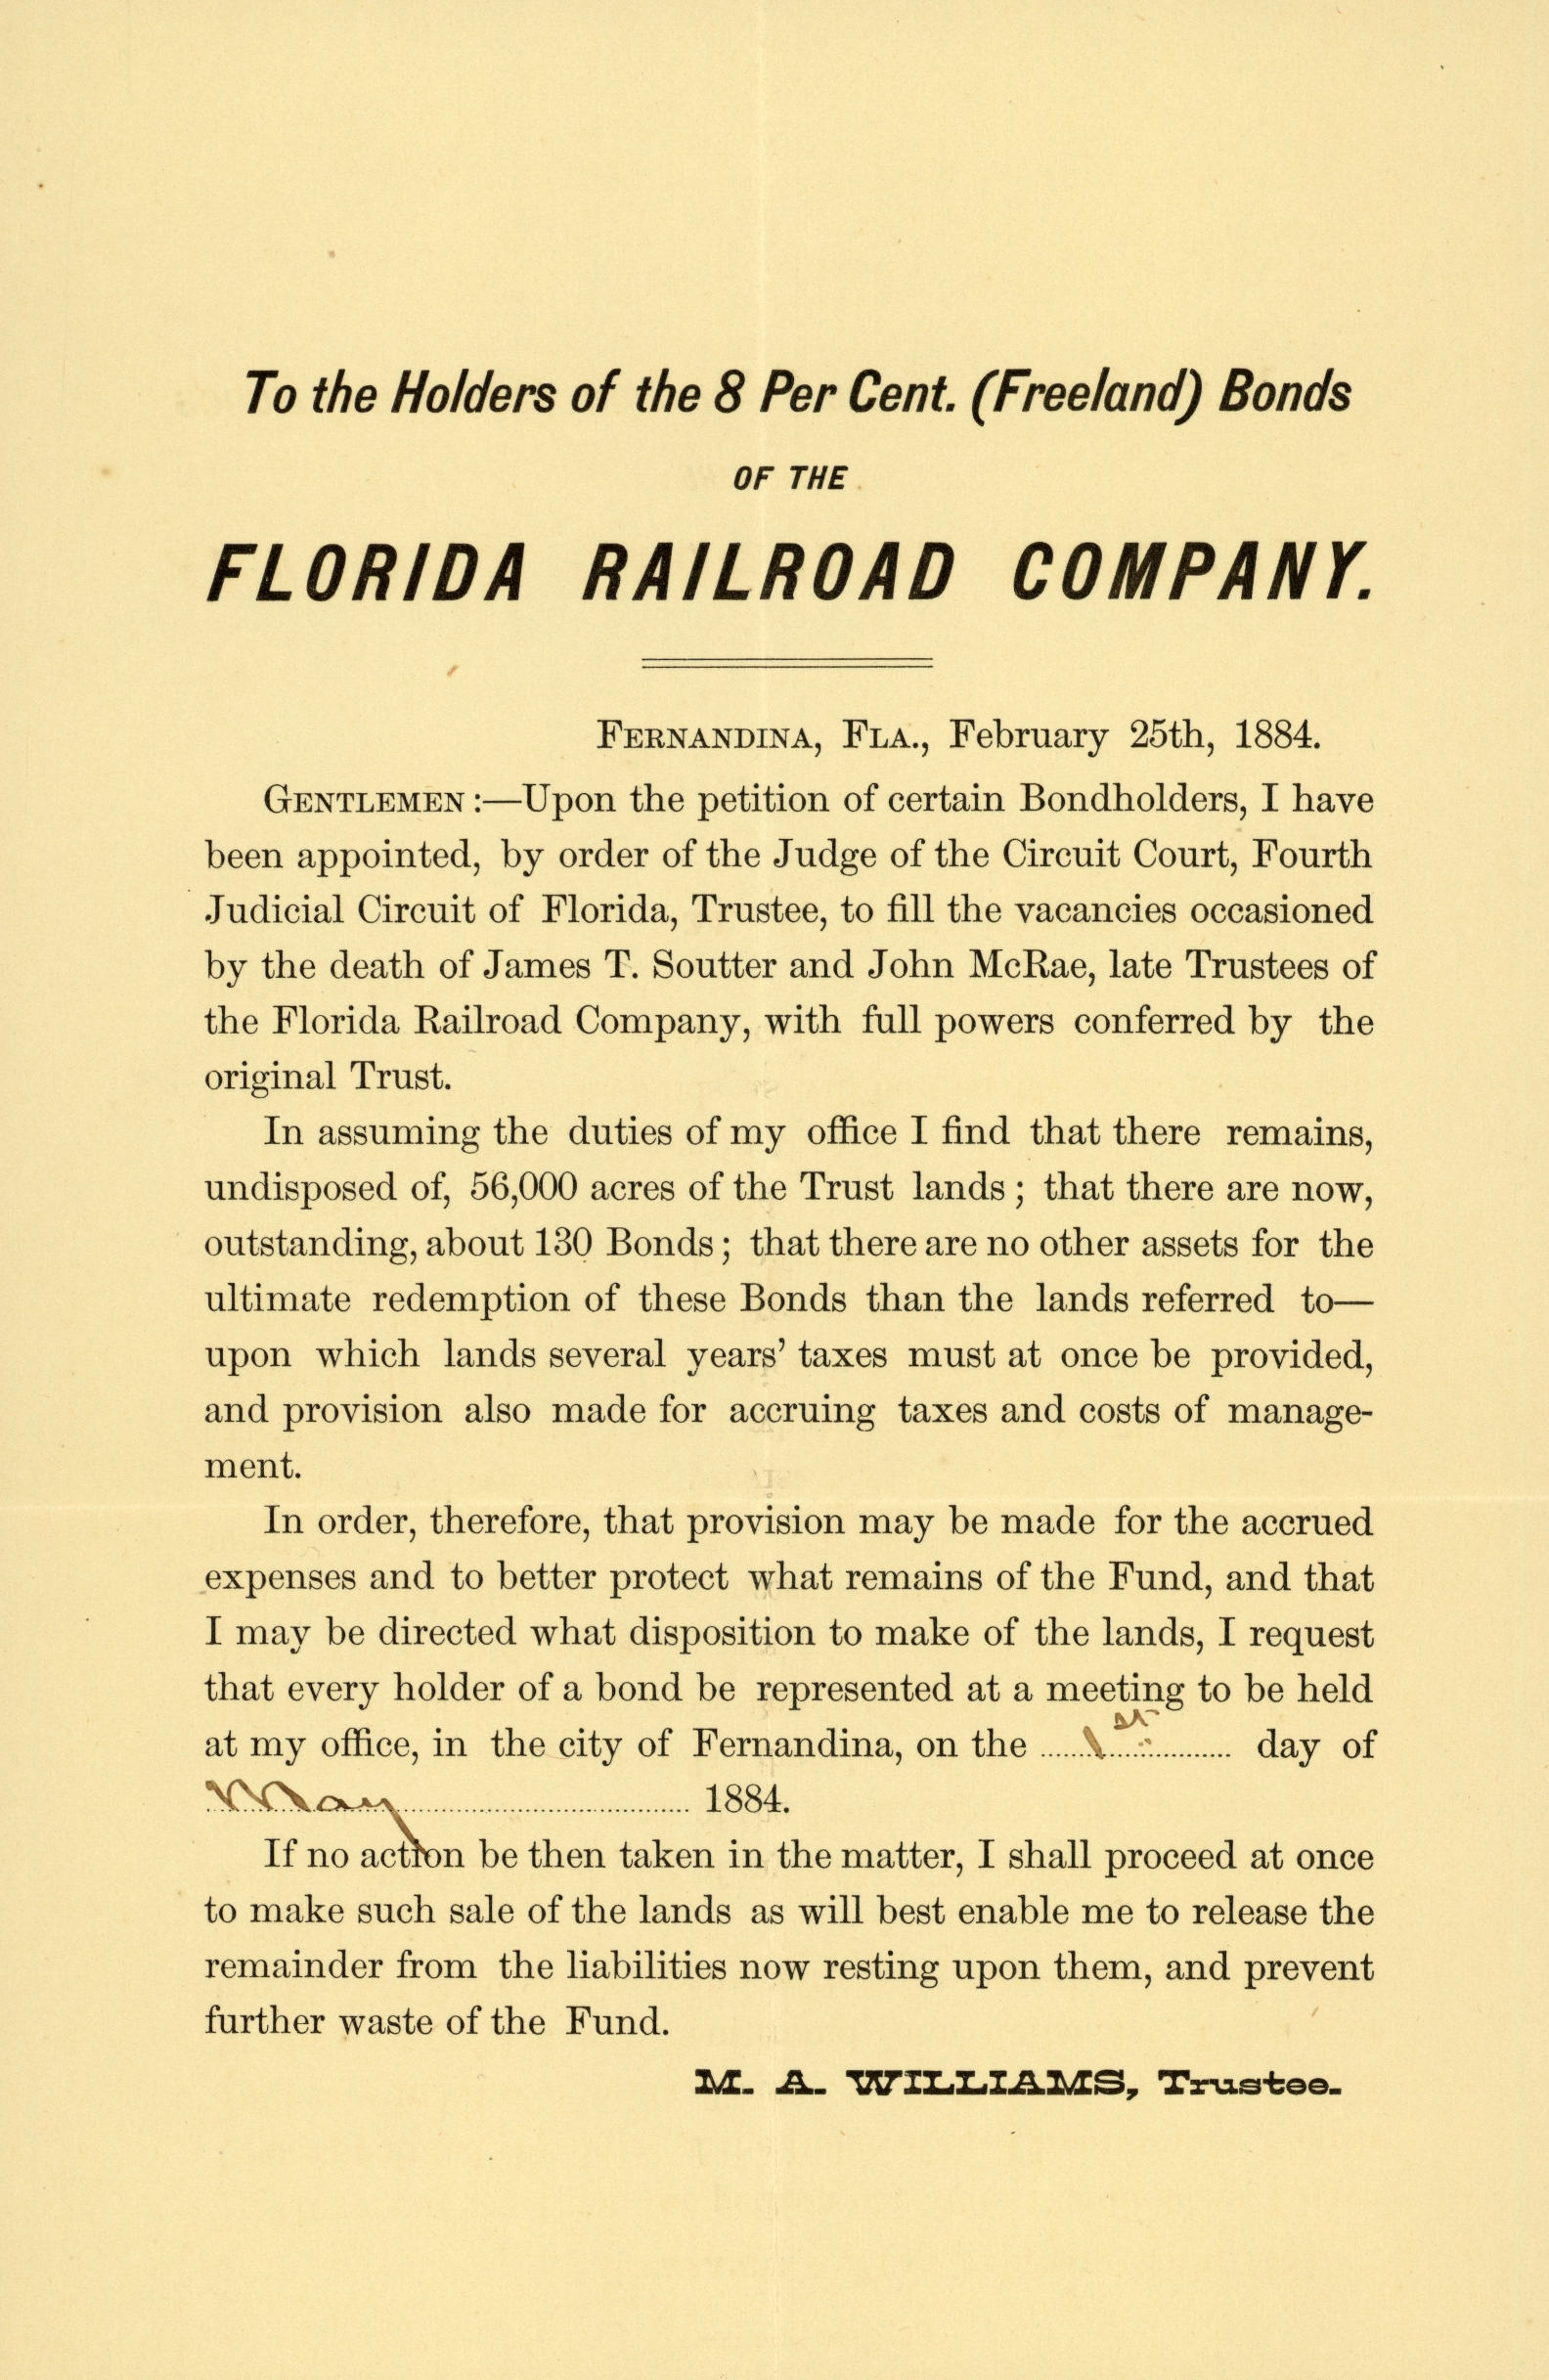 To the holder of the 8 per cent (Freeland) bonds of the Florida Railroad Company. 